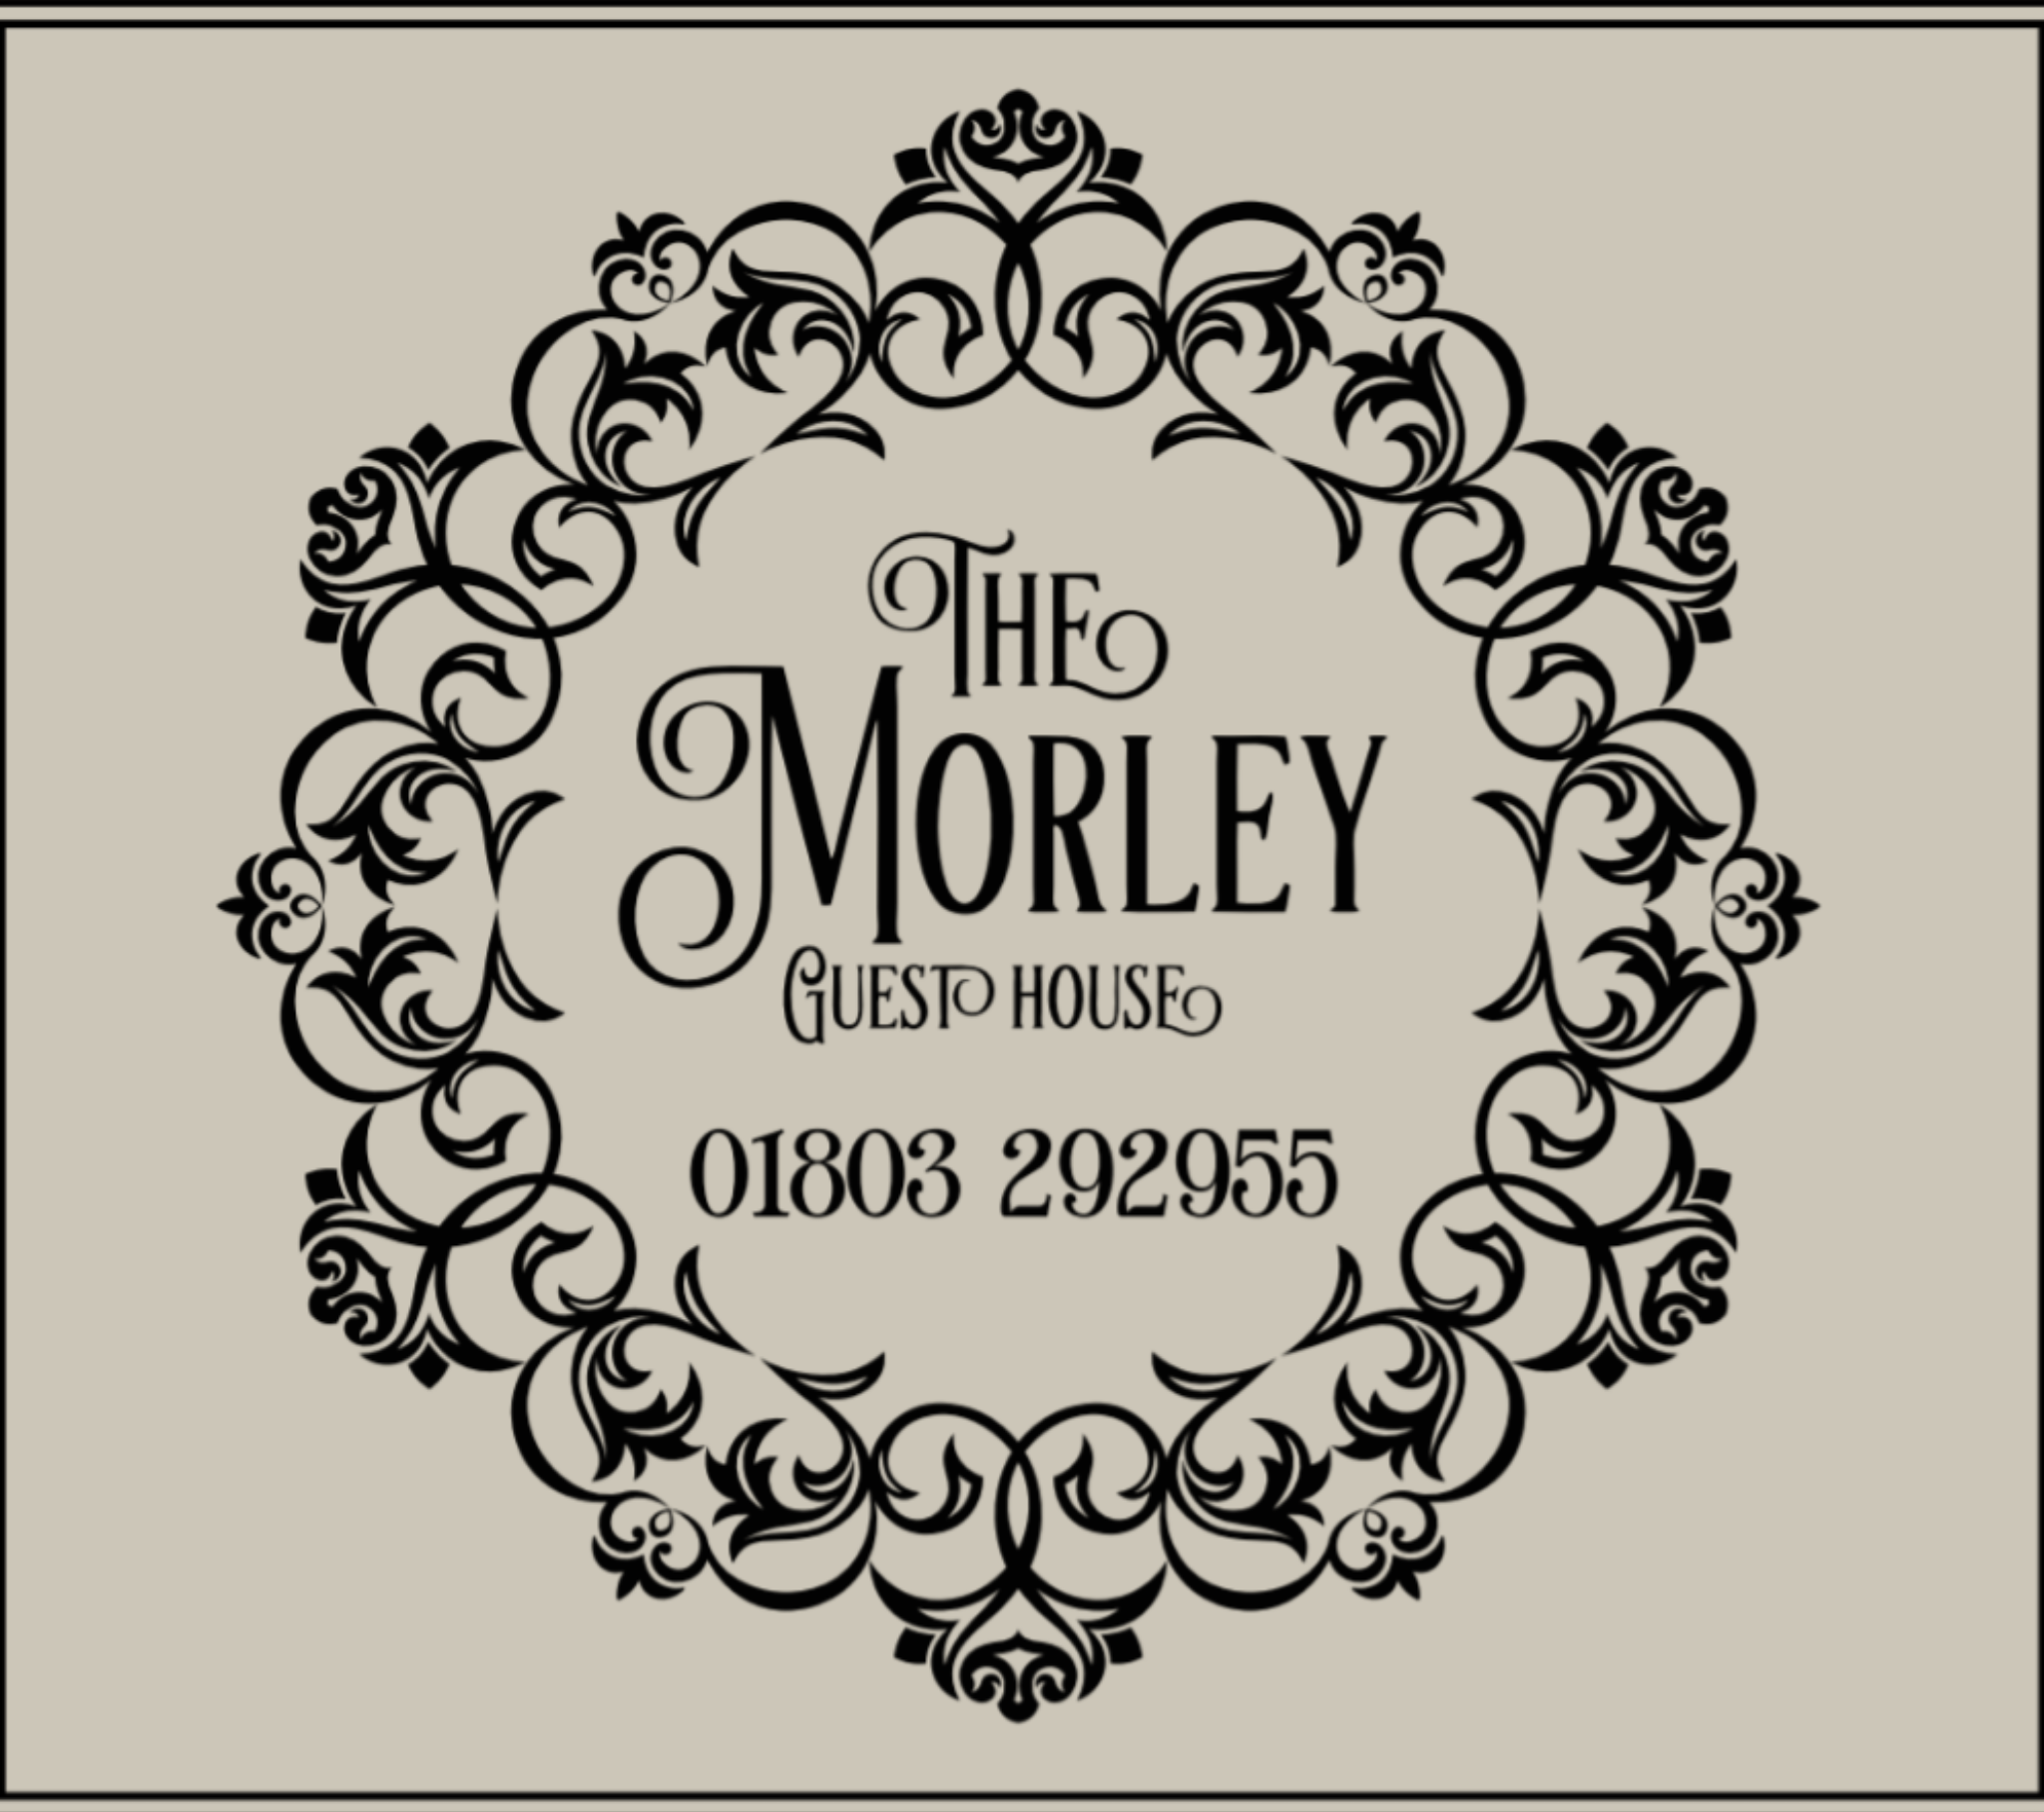 The Morley Torquay